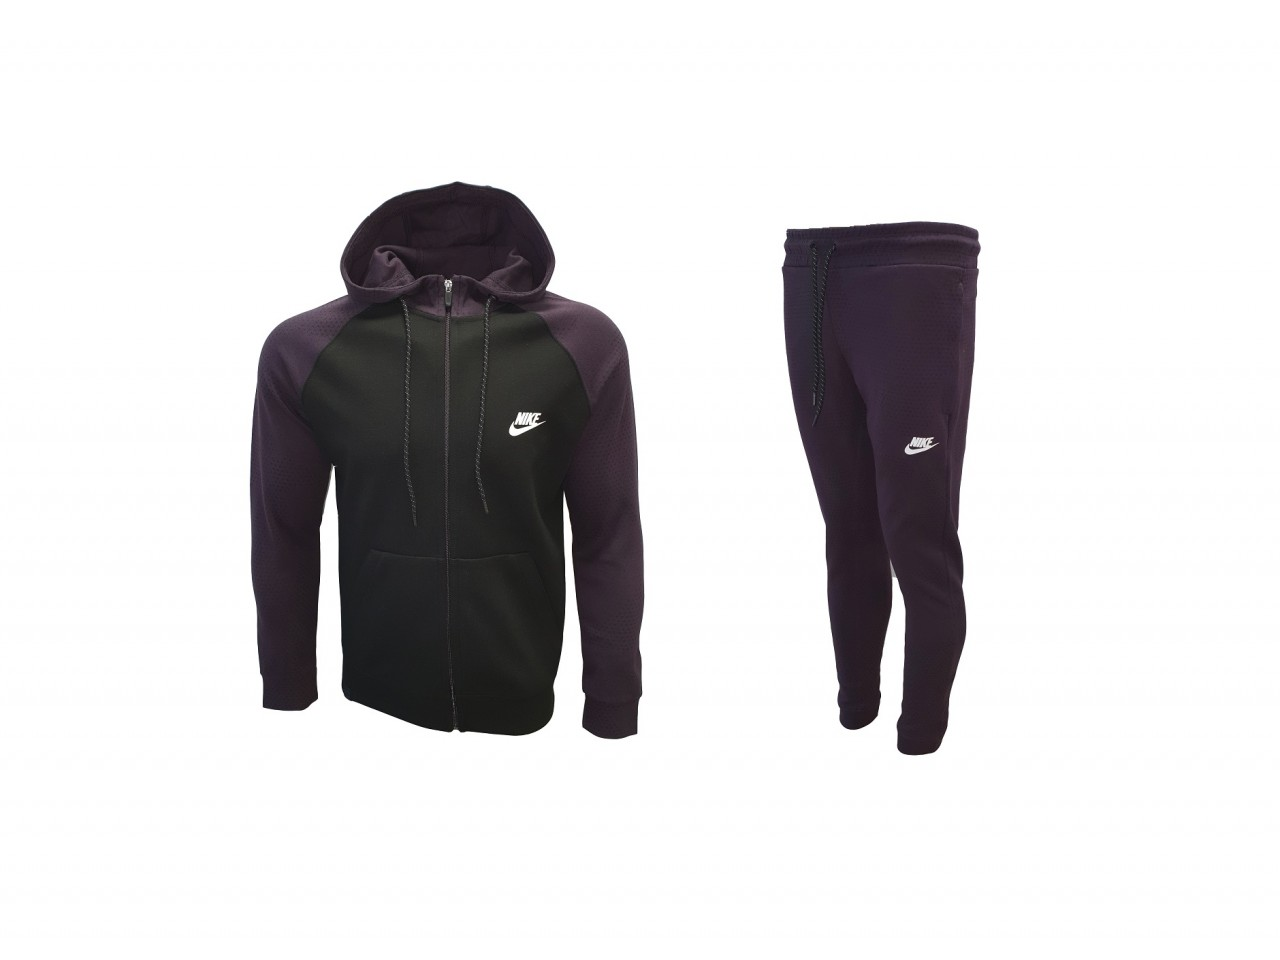 Nike Tracksuit Top Model Black Purple